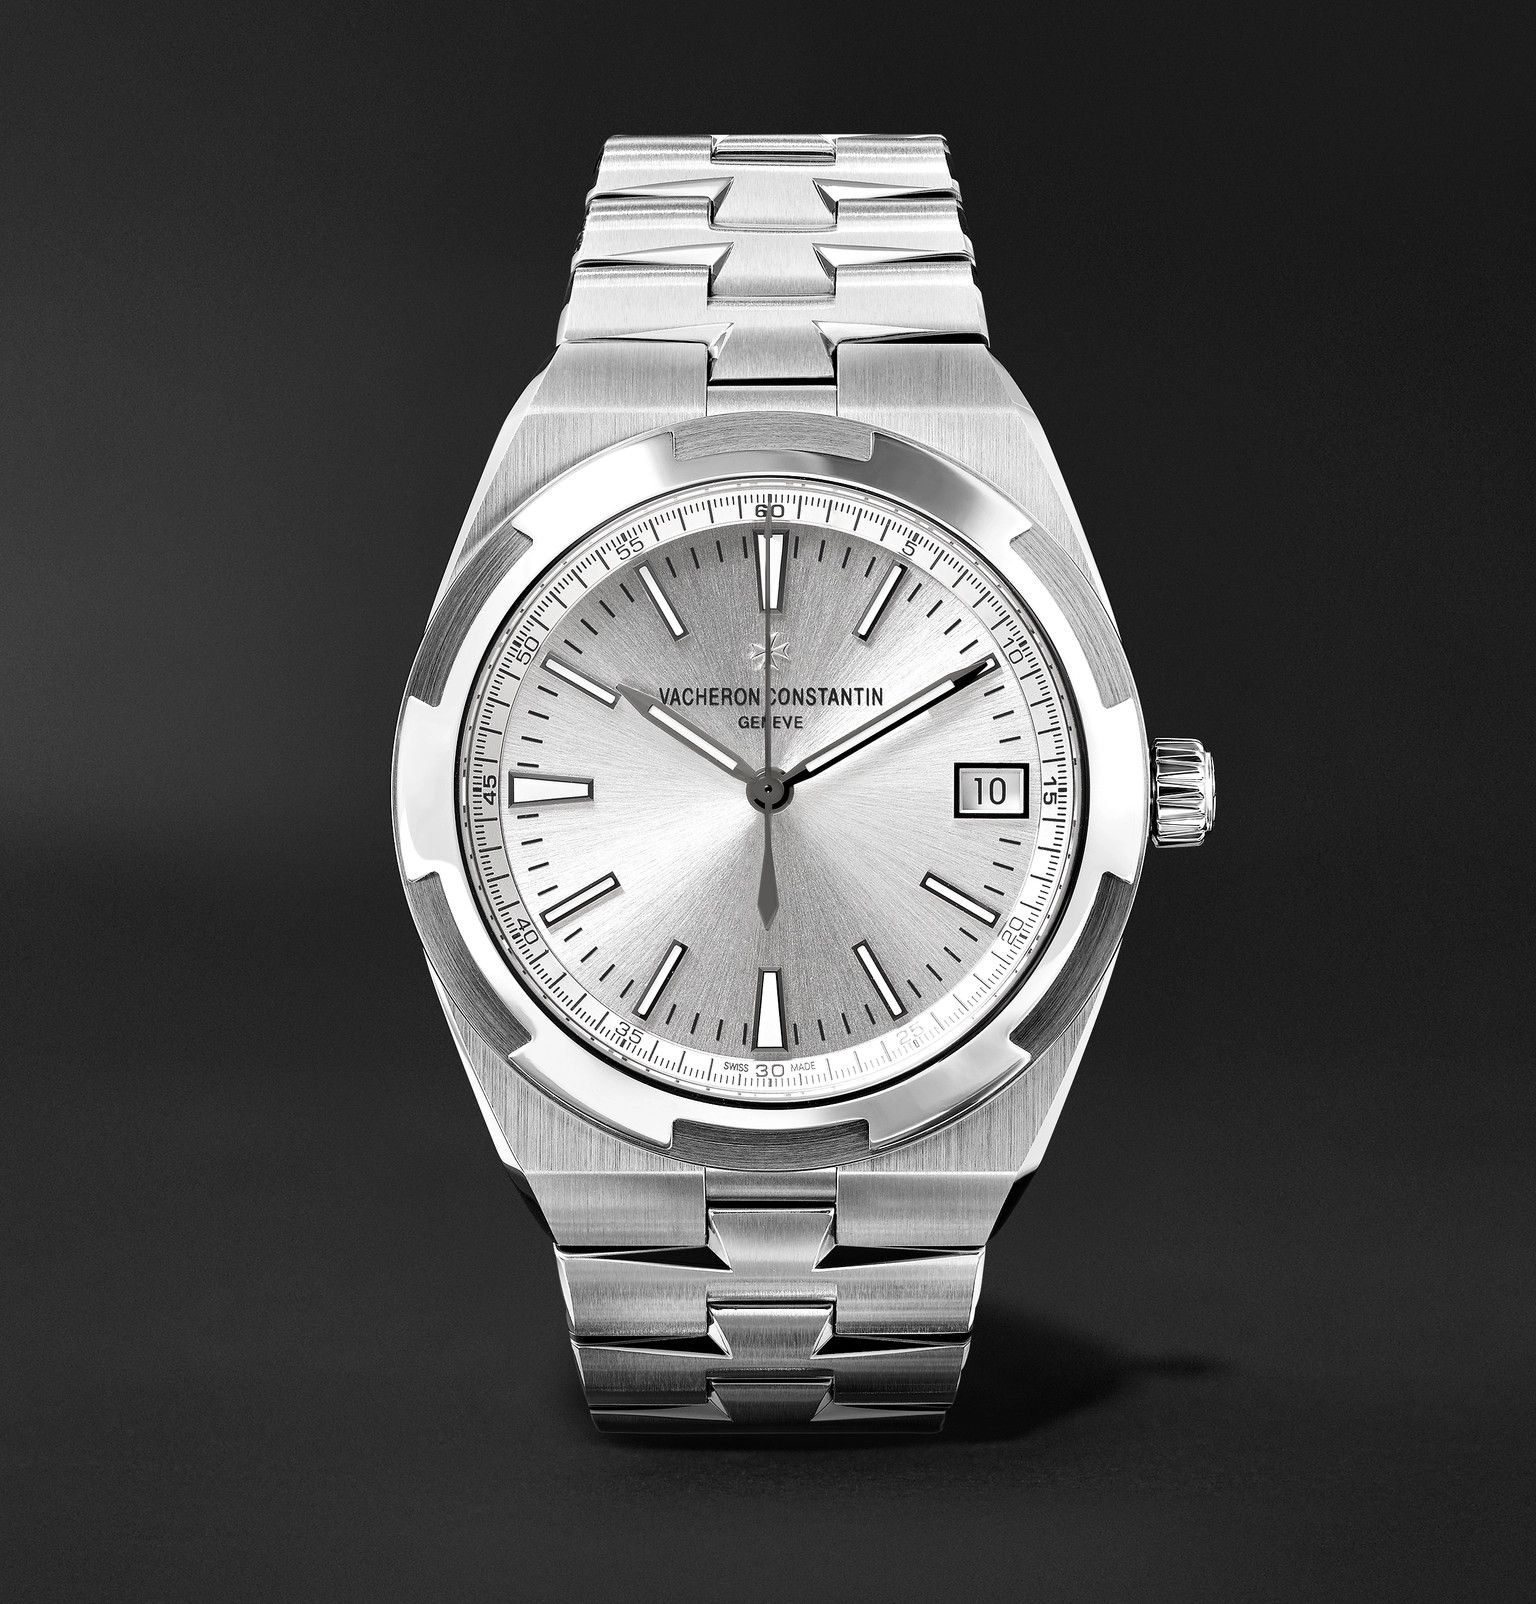 Silver Overseas Automatic 41mm Stainless Steel Watch Ref No 4500v 110a B126 X45a9727 Vacheron Constantin In 2020 Luxury Watches For Men Luxury Watches Stainless Steel Watch